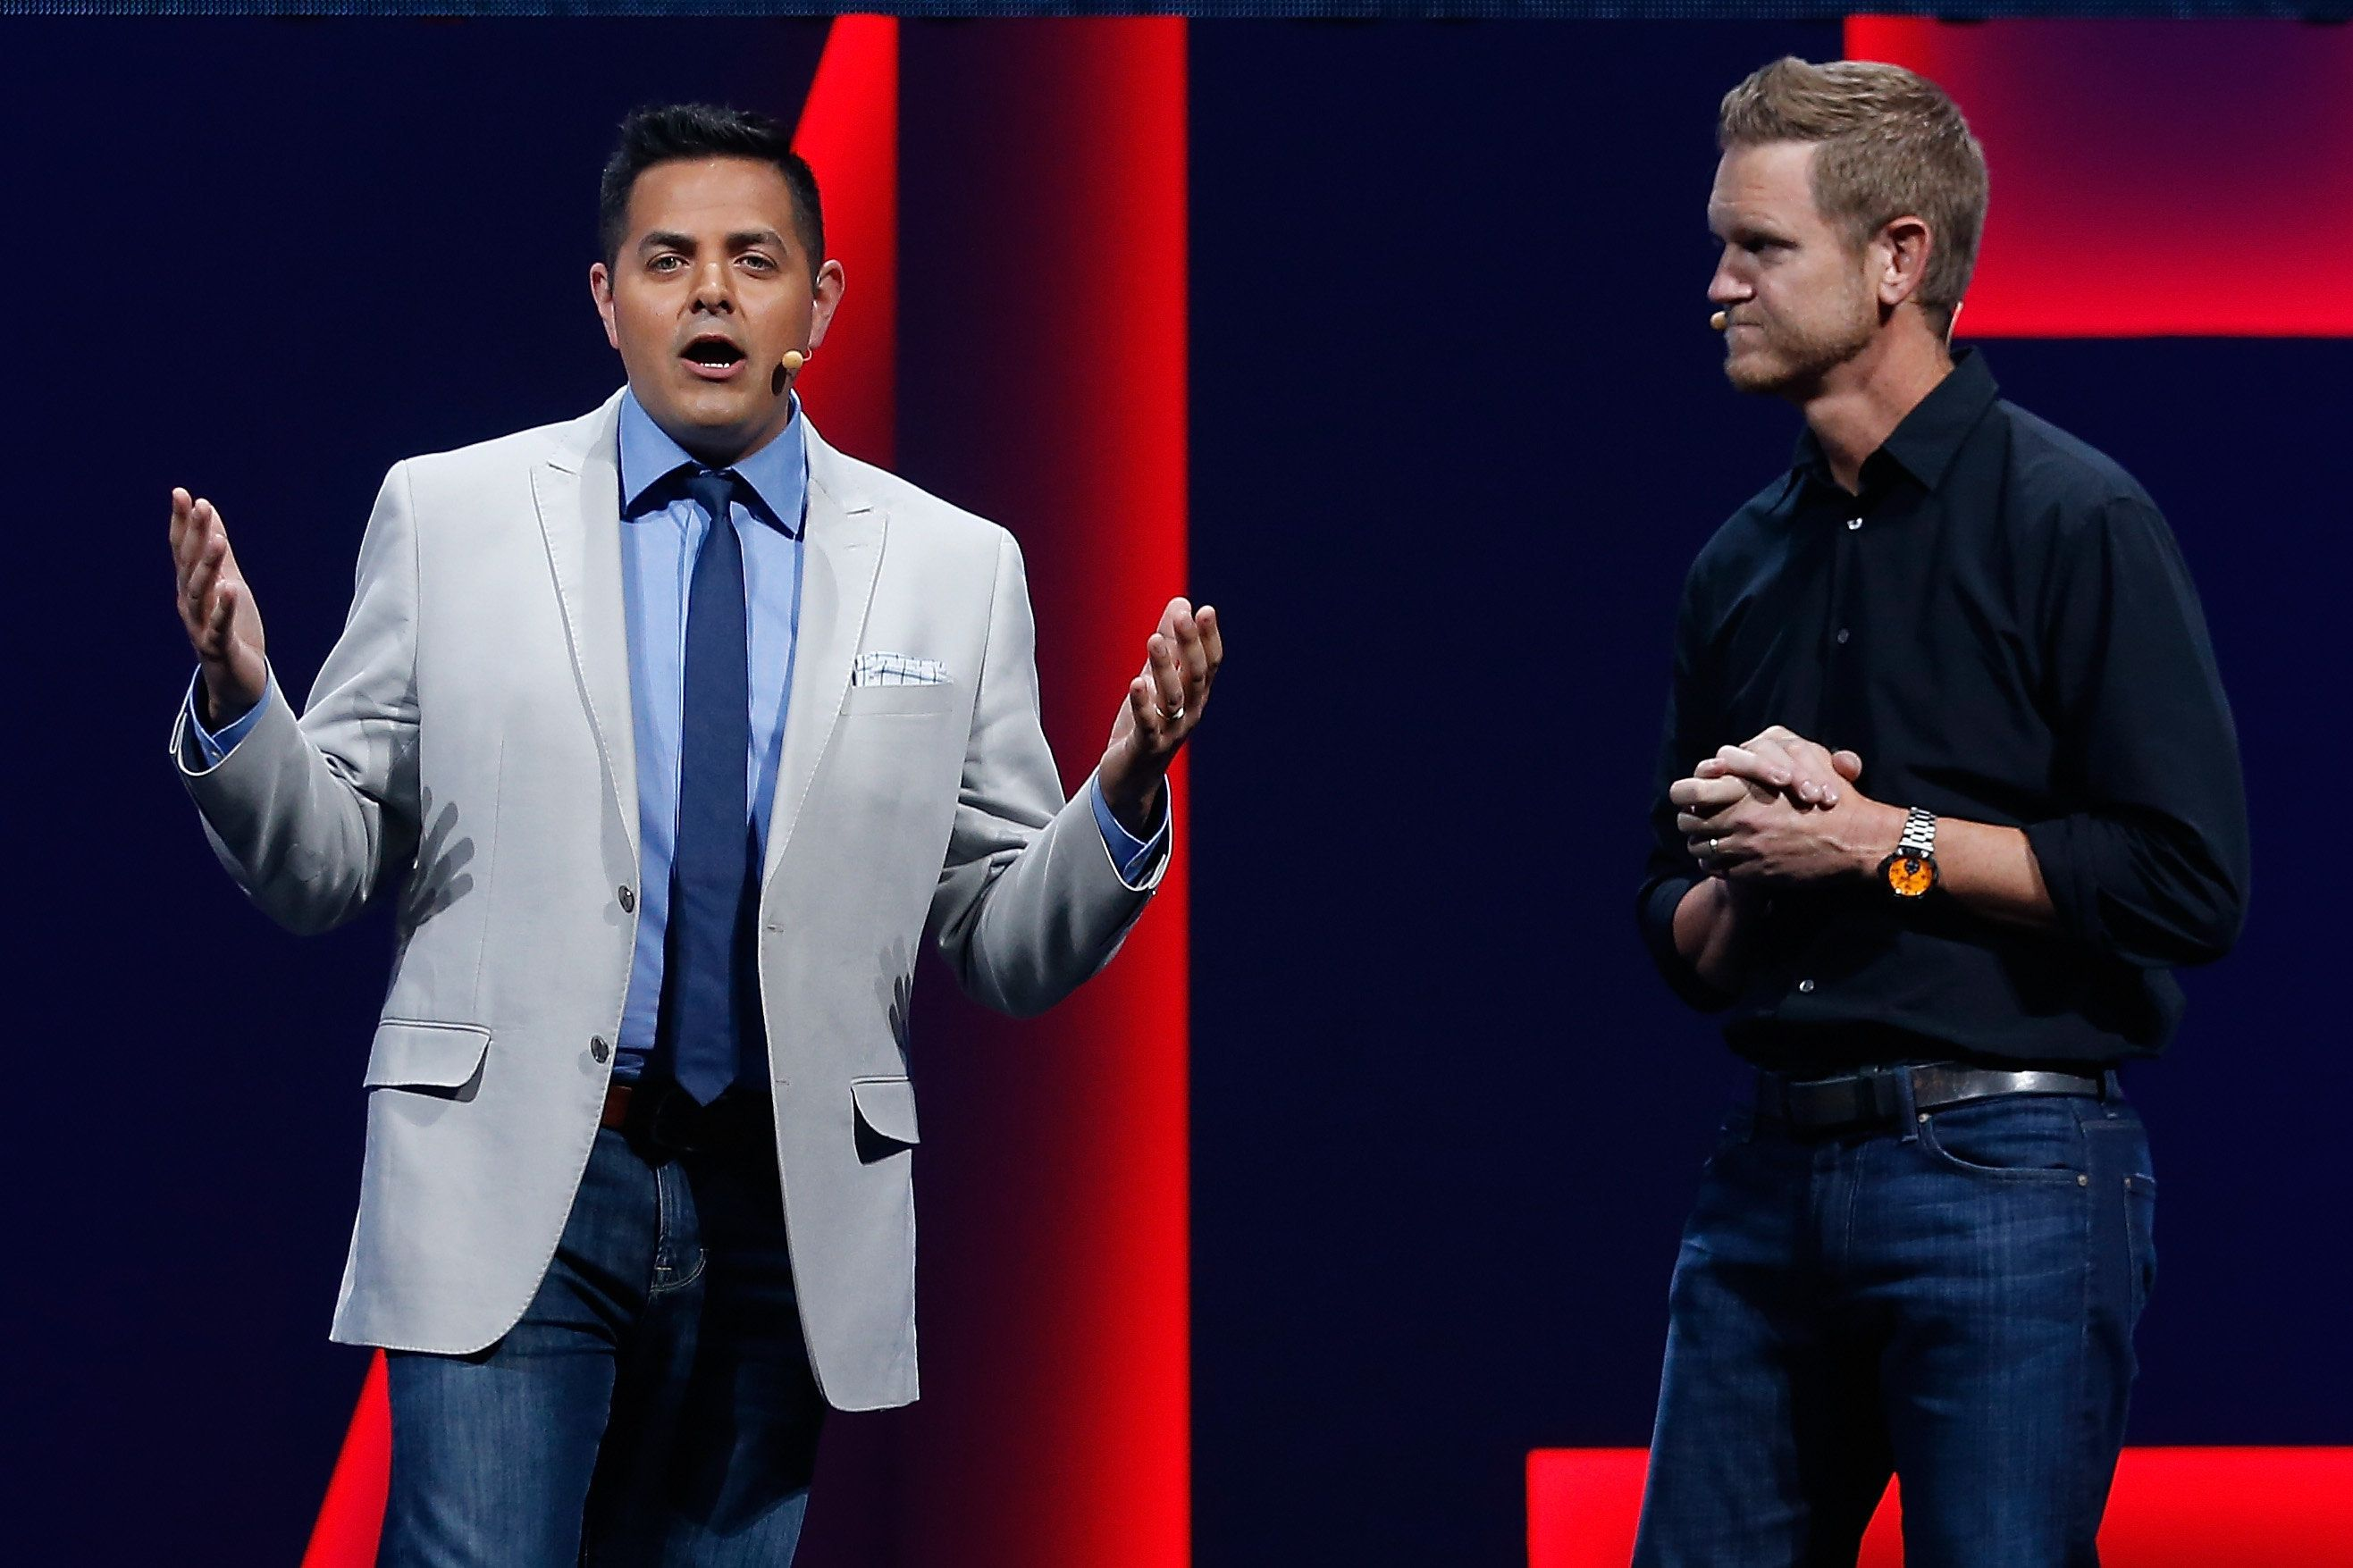 LOS ANGELES, CA - JUNE 15:  ESPN journalist Robert Flores (L) and Senior Producer Seann Graddy (R) introduce 'Madden NFL 16' during the Electronic Arts E3 press conference at the LA Sports Arena on June 15, 2015 in Los Angeles, California. The EA press conference is held in conjunction with the annual Electronic Entertainment Expo (E3) which focuses on gaming systems and interactive entertainment, featuring introductions to new products and technologies.  (Photo by Christian Petersen/Getty Images)